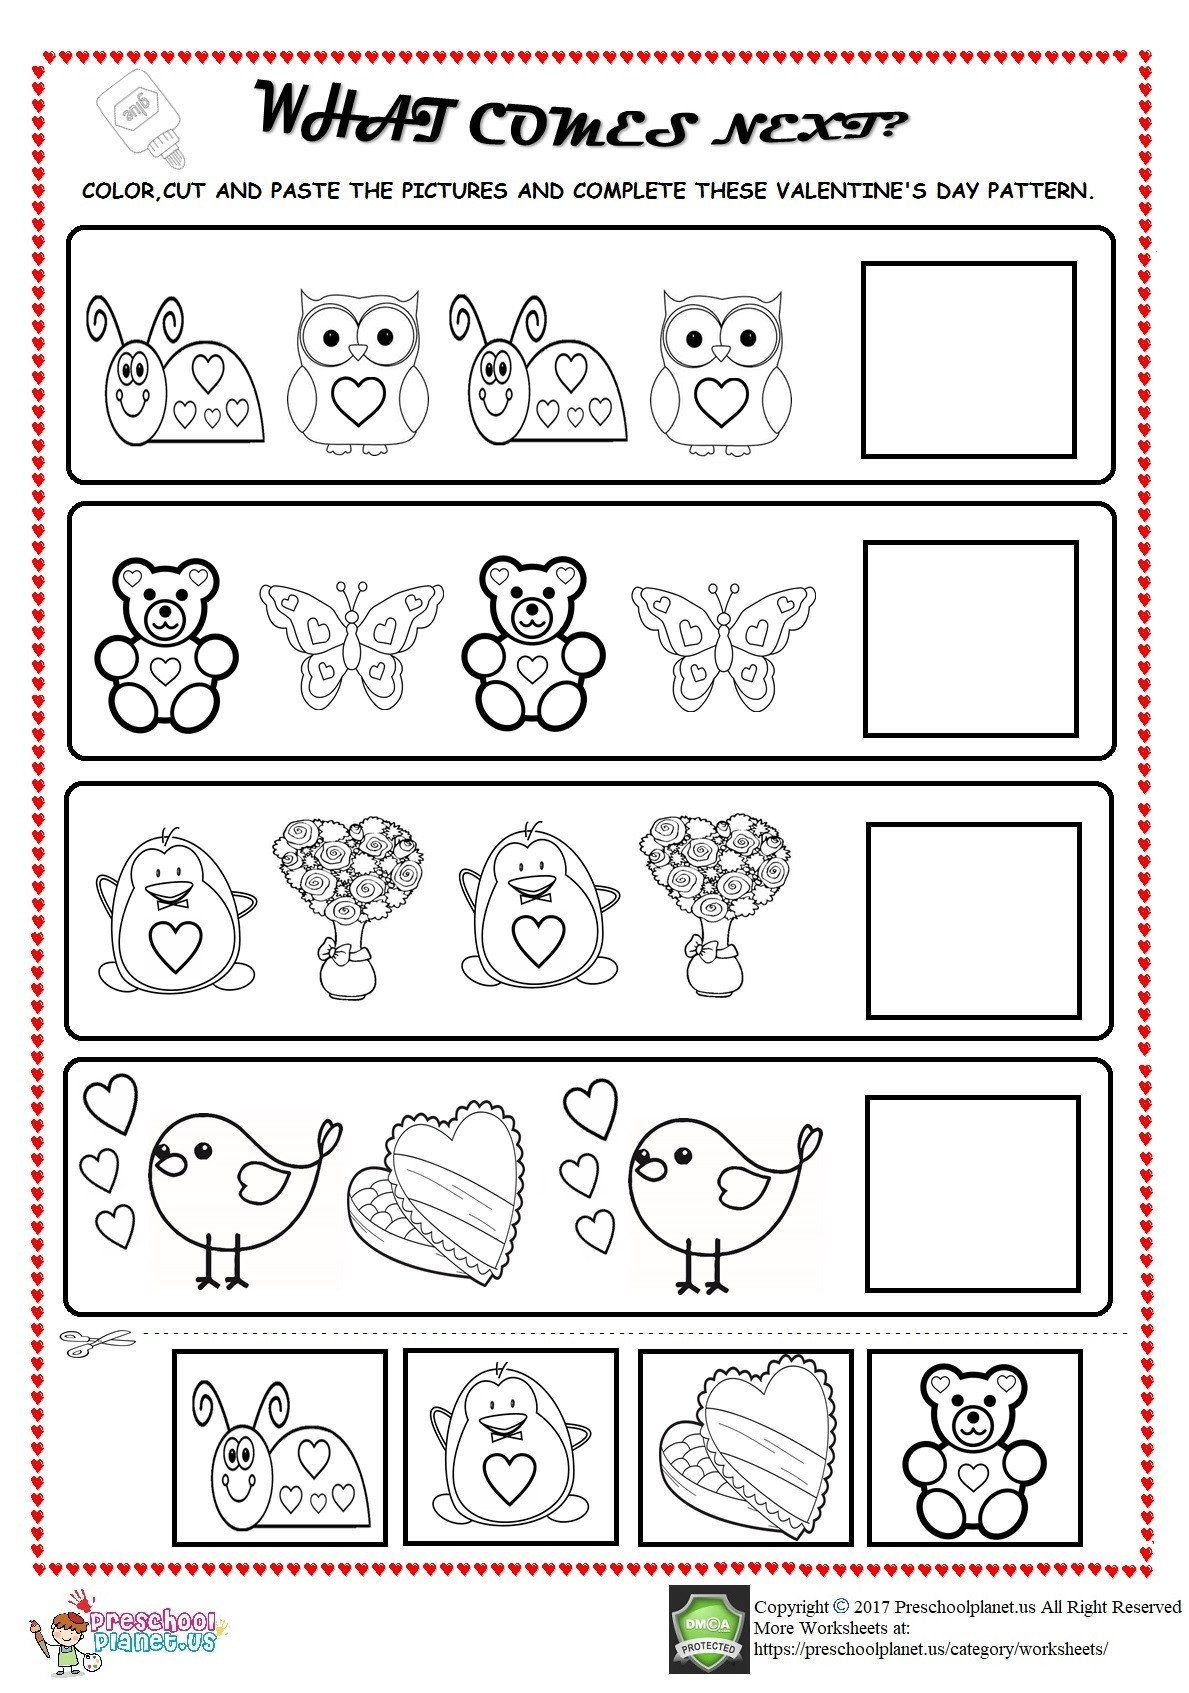 valentines day pattern worksheet for kids